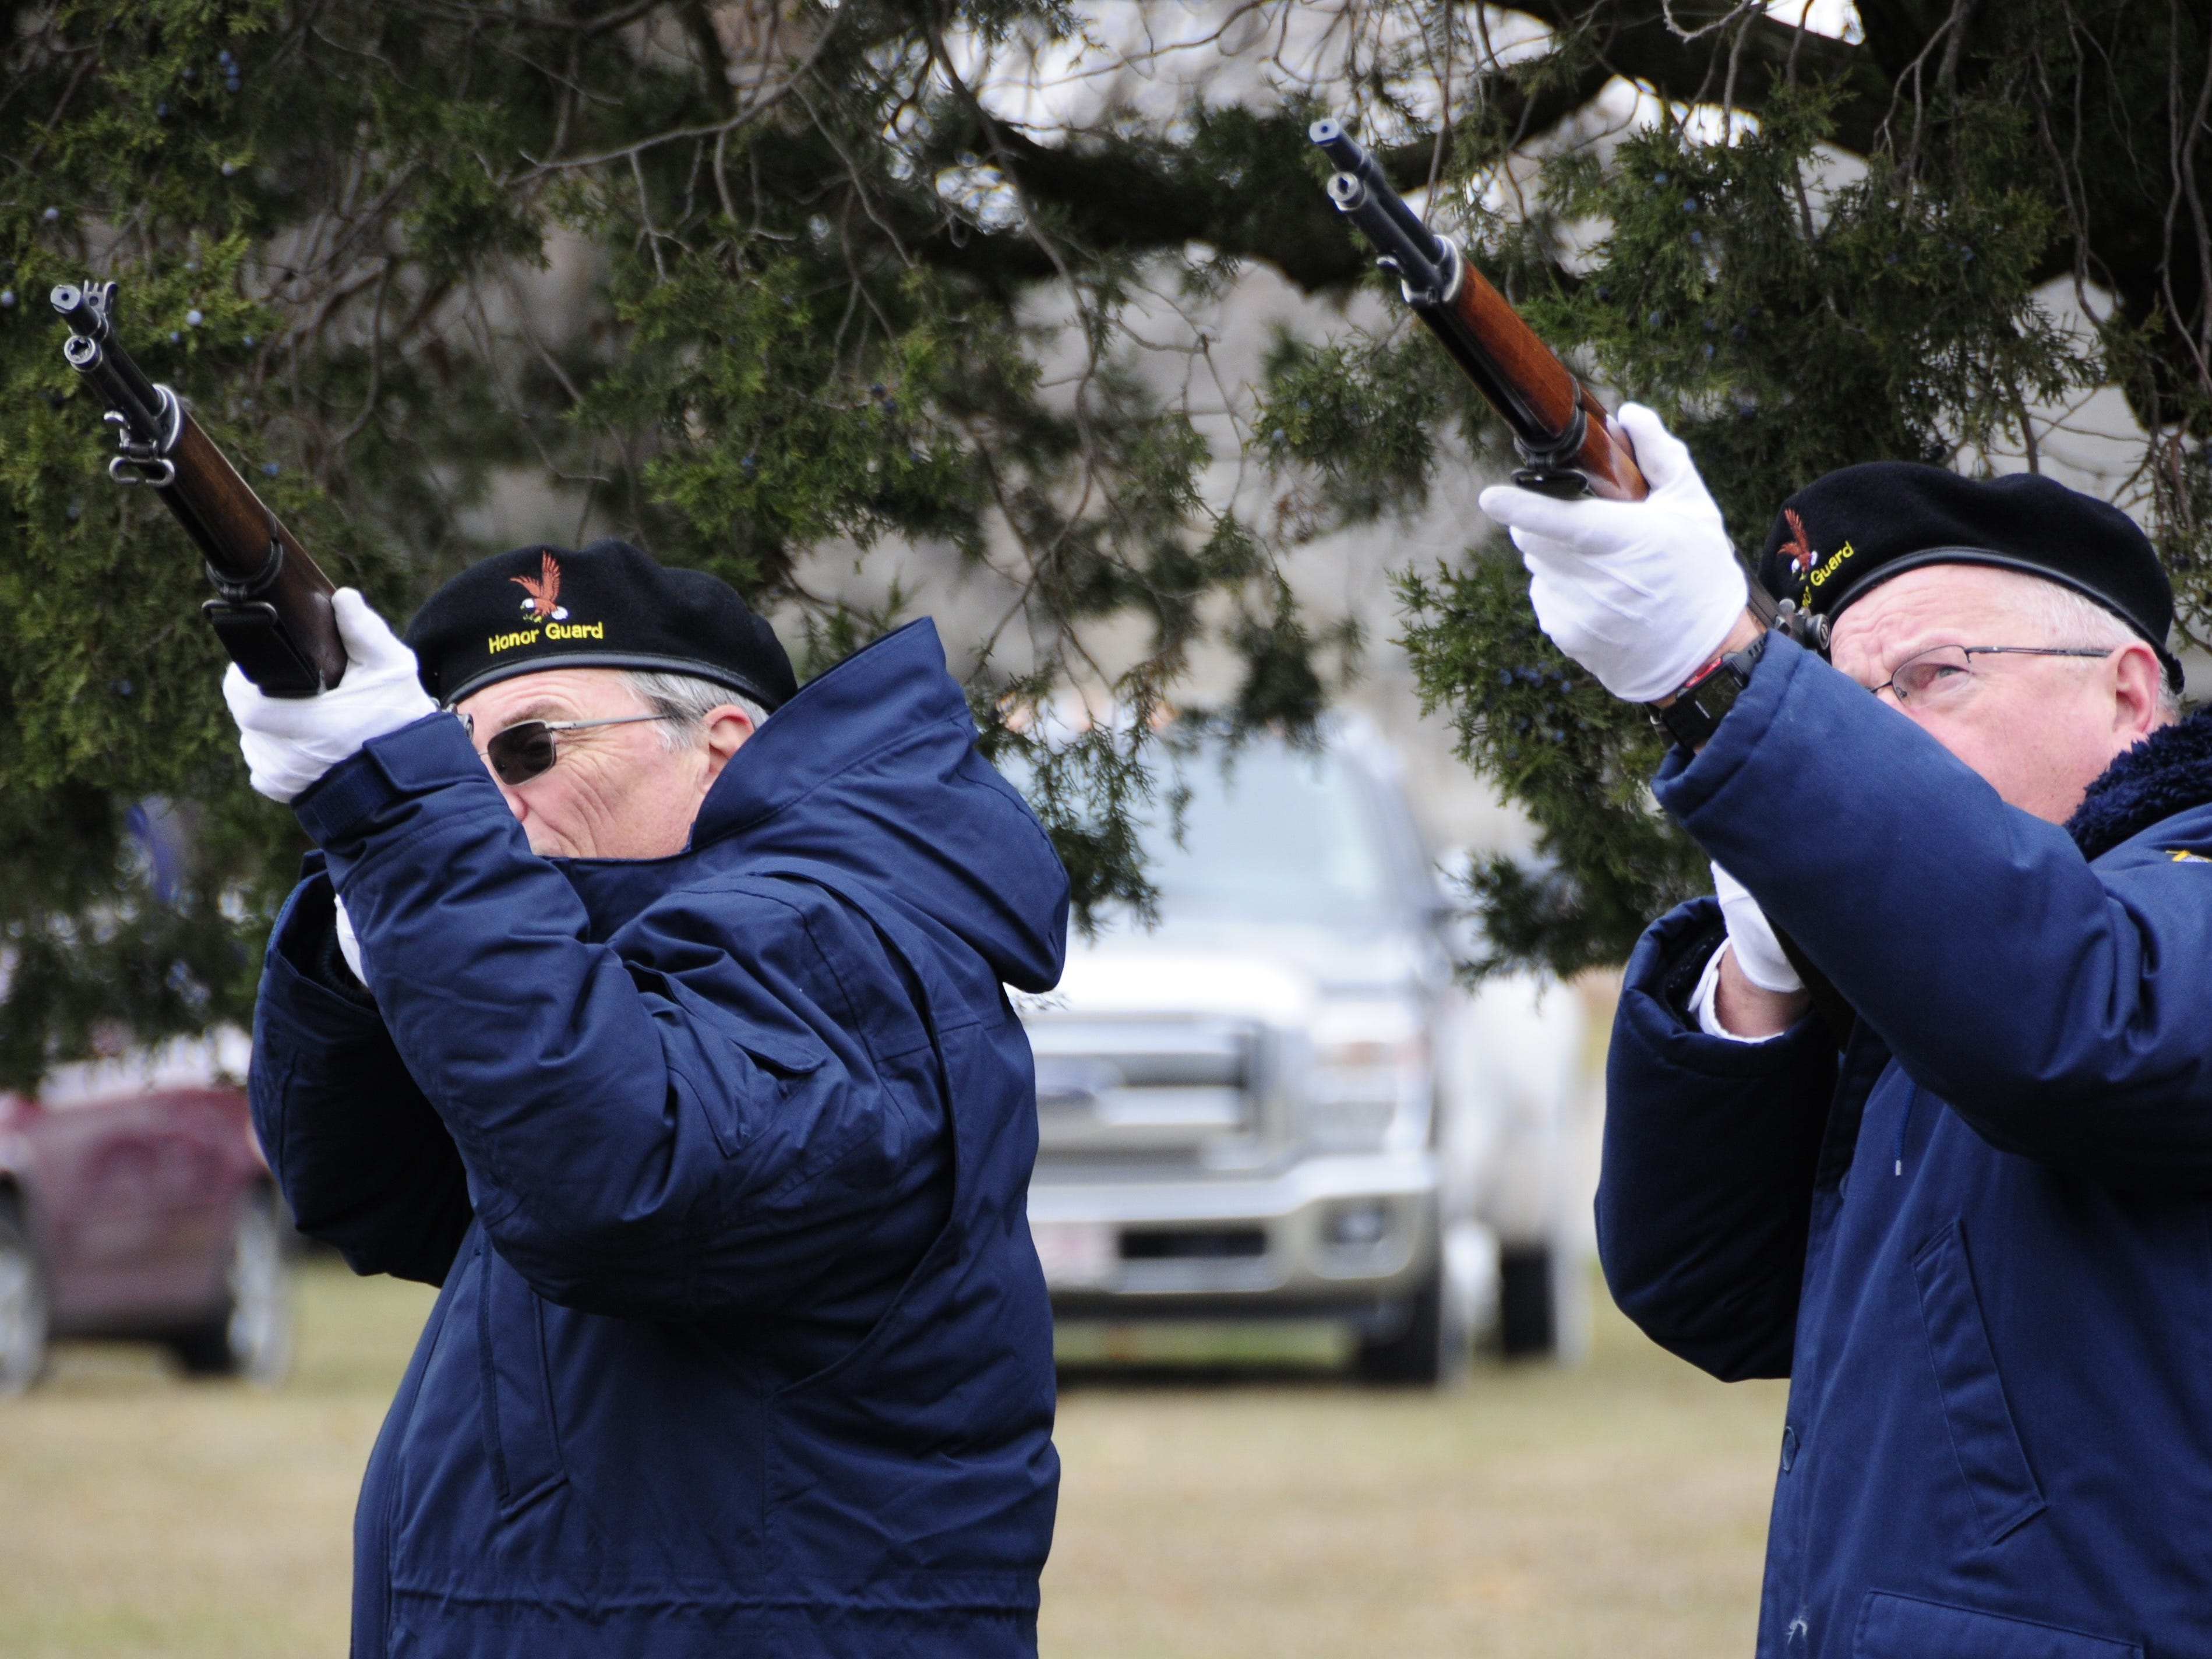 Steve Tebay, left, and Lee Pochert fire a salute during the Wreaths Across America event on Saturday, Dec. 15, 2018 at the St. Clair County Allied Veterans Cemetery.